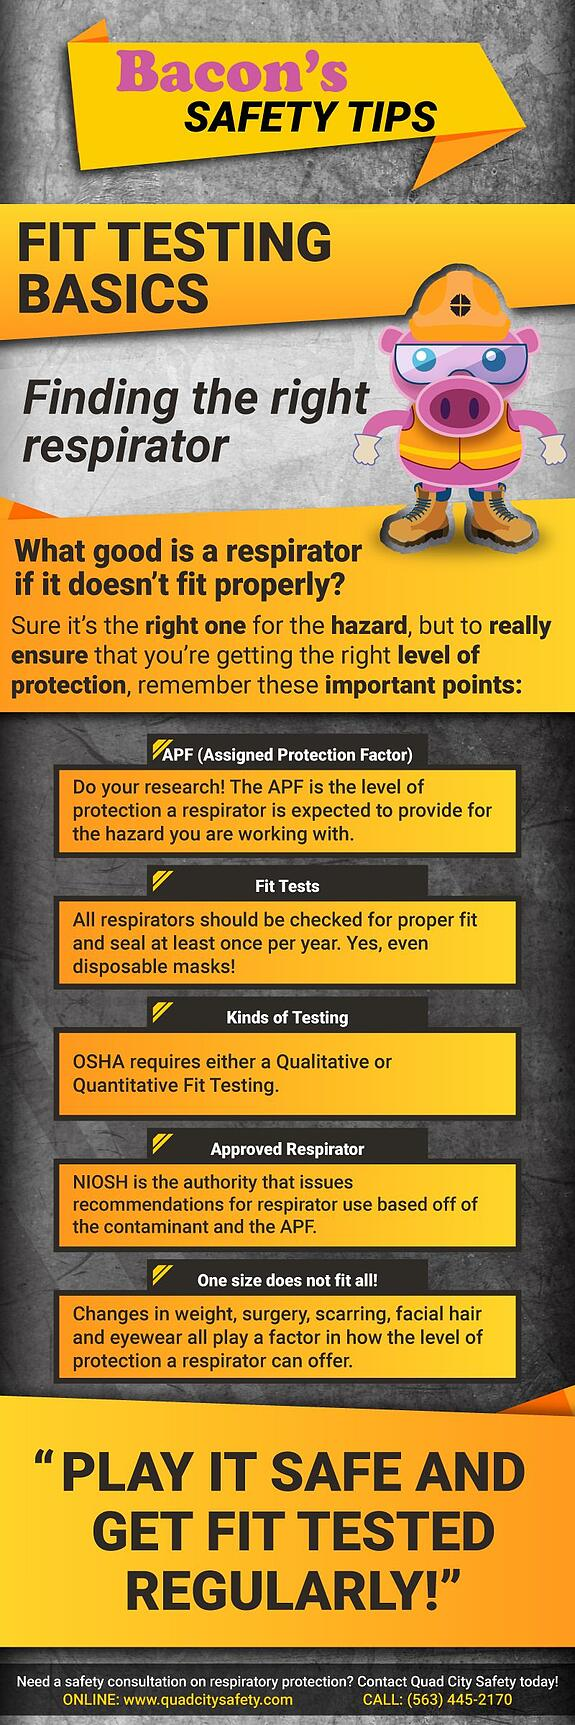 Bacon's Safety Tips Fit Testing Basics. Finding the right respirator.